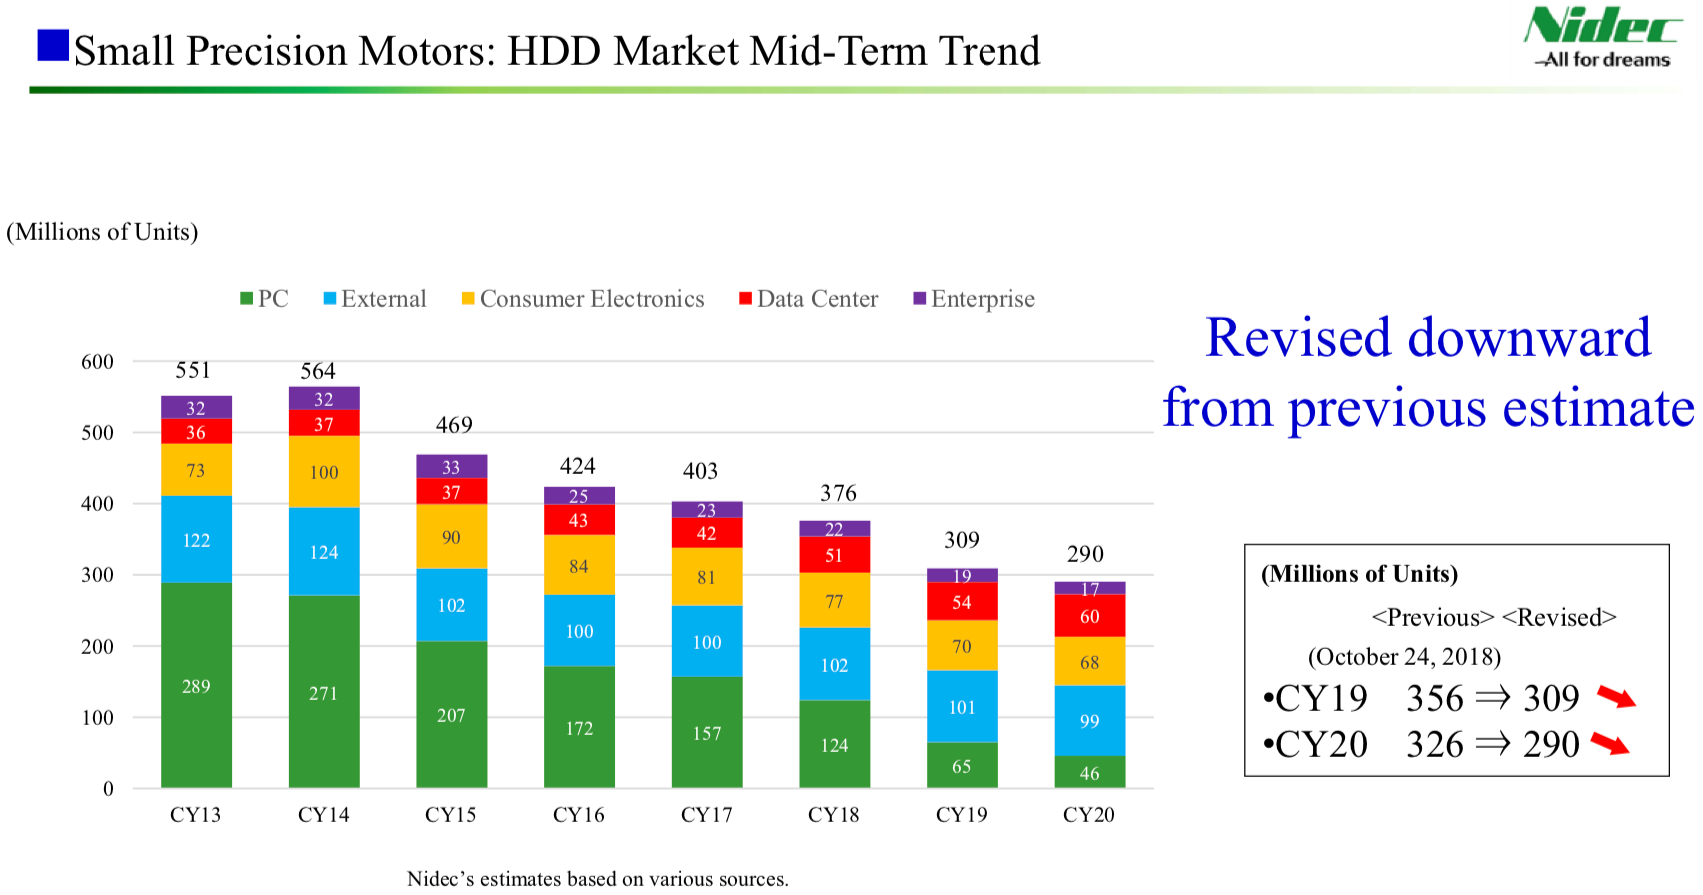 Best Hard Drives 2020 Shipments of PC Hard Drives Predicted to Drop By Nearly 50% in 2019